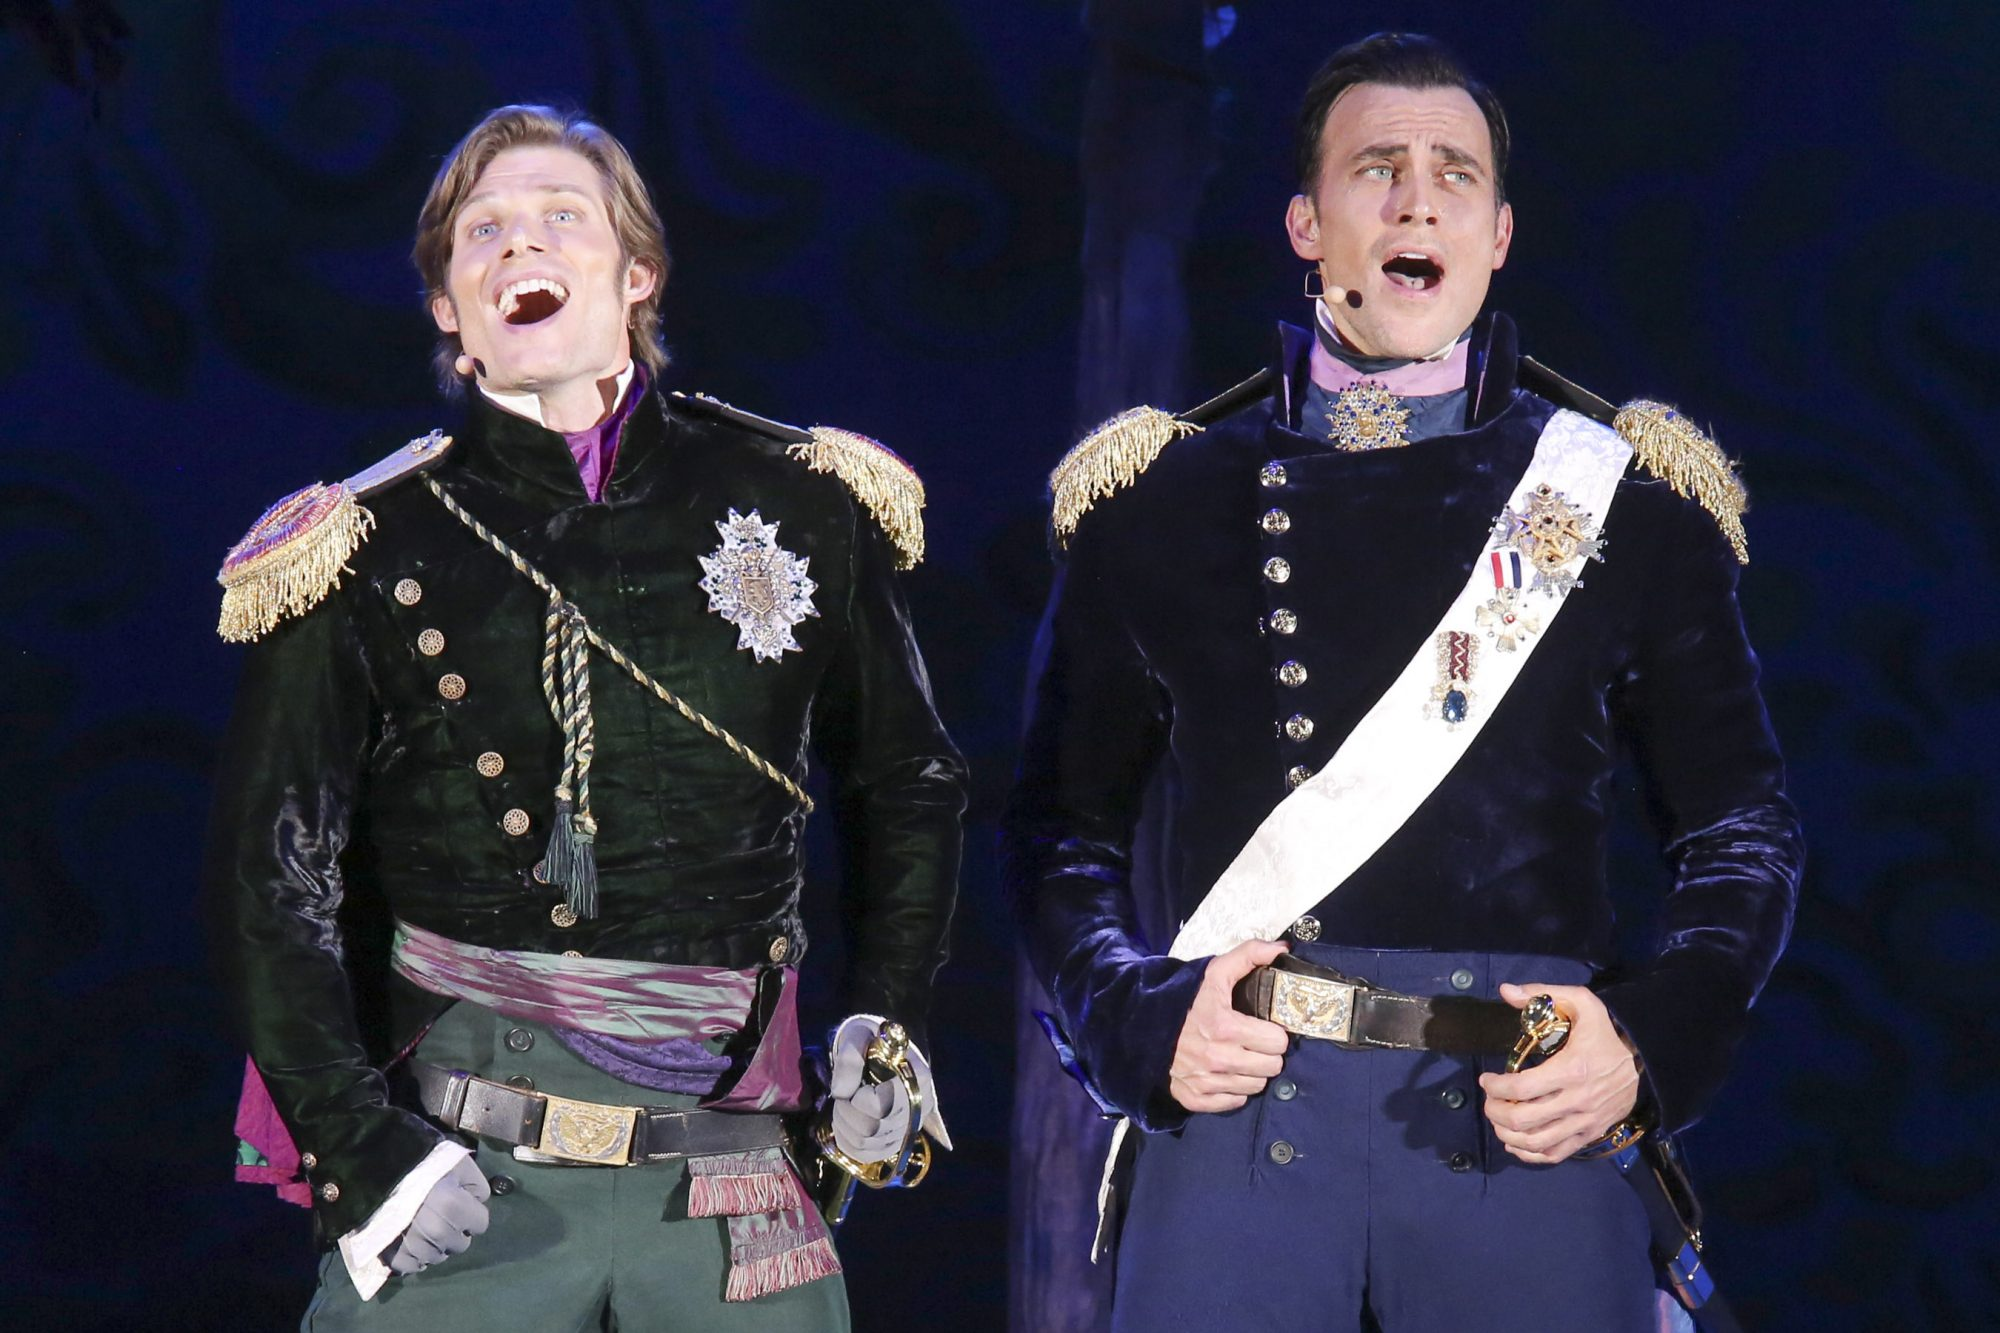 Hollywood Bowl Presents Into The Woods 2019 -- Pictured: Chris Carmack and Cheyenne Jackson as Princes Photos by Craig T. Mathew and Greg Grudt/Mathew Imaging If these photos will be used on Social Media, please be sure to tag the following: @mathewimaging